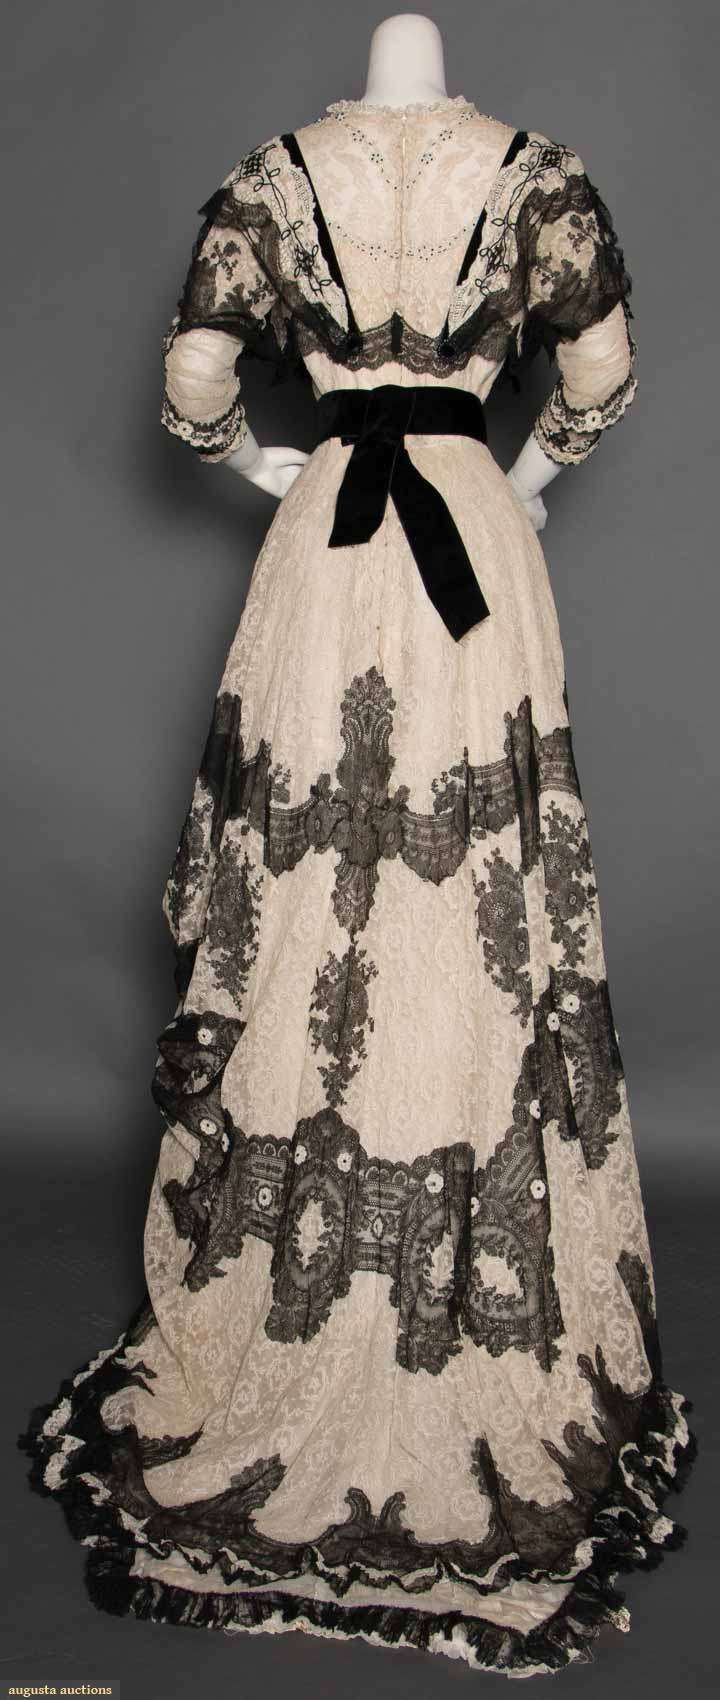 White and black lace dinner gown, 1-piece, cream Valenciennes lace w/ black chantilly lace swags on bodice & lower hem, princess lines, scoop neck, short sleeves, bodice w/ jet & turquoise beads & jet ovals, ca 1902